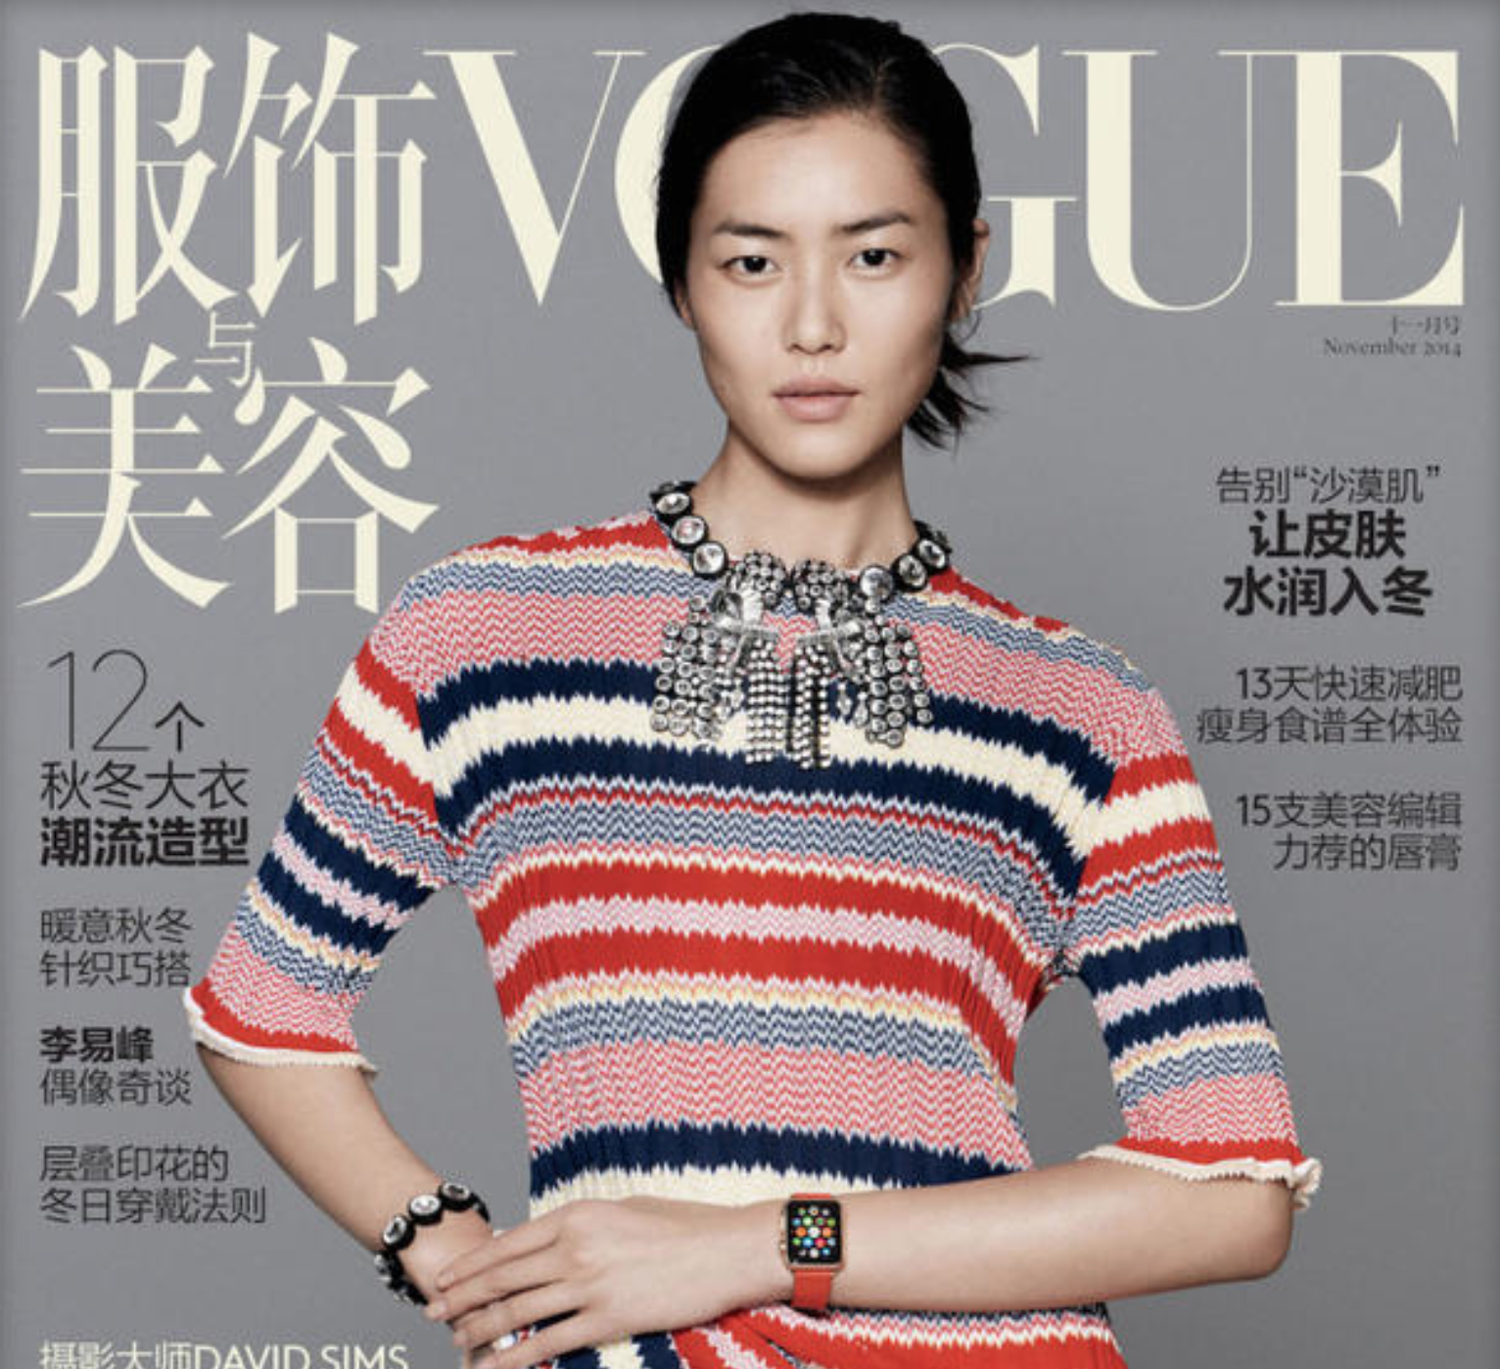 voguechinacover_apple_watch